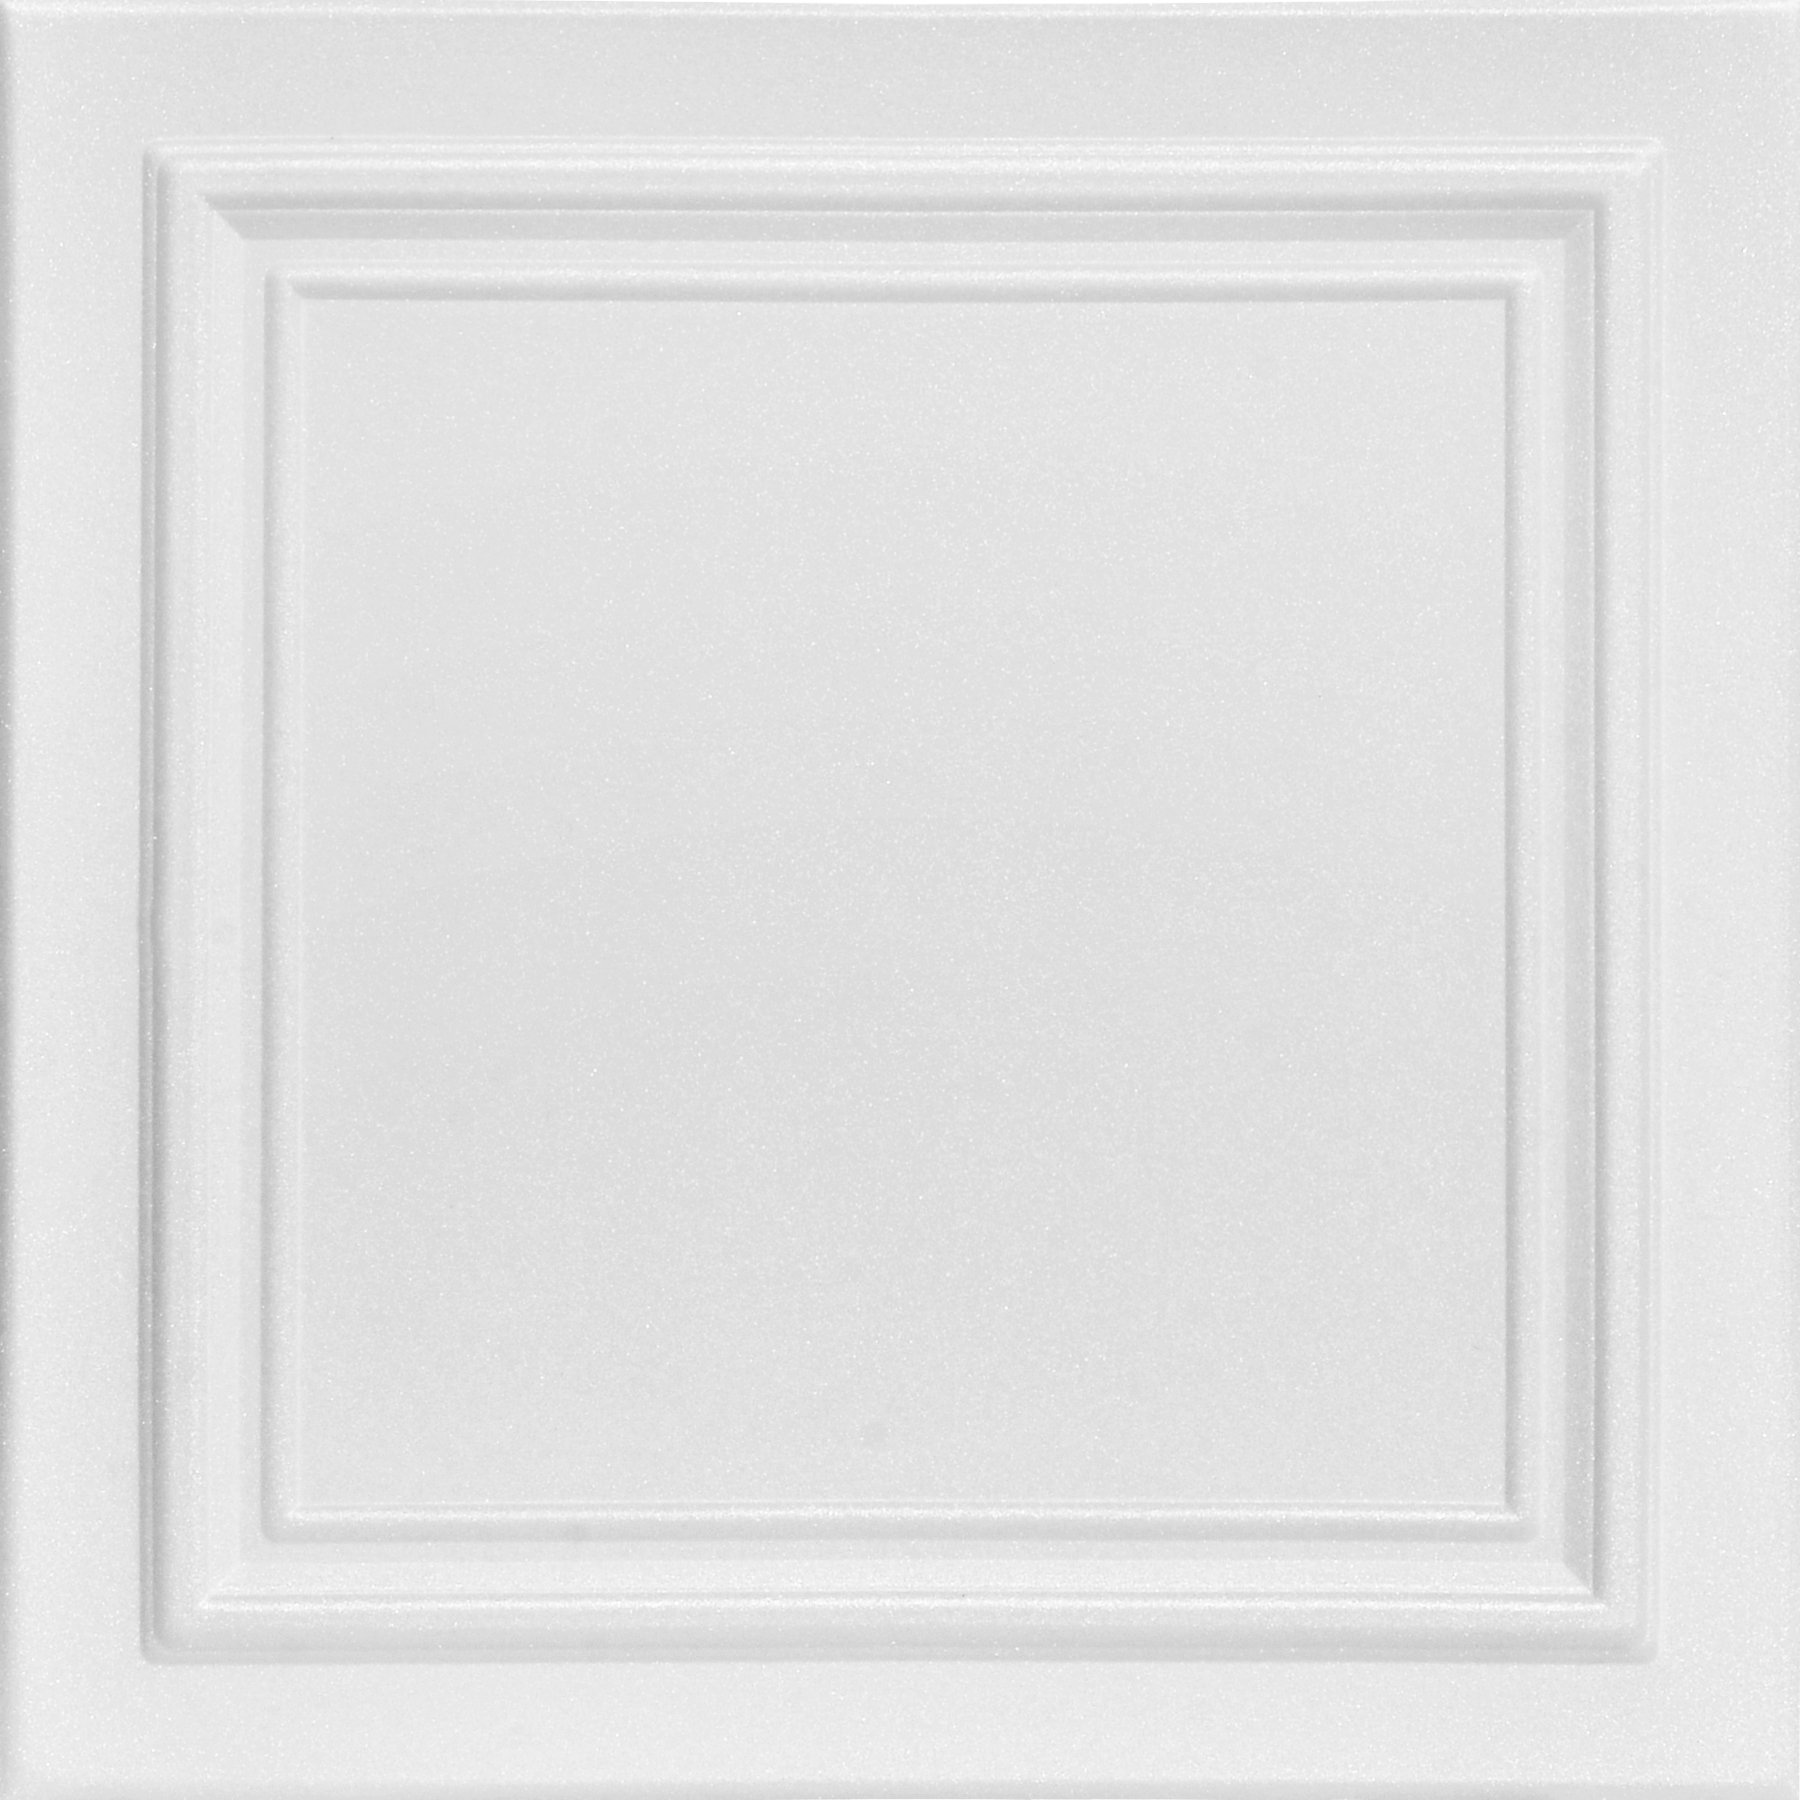 A la Maison Ceilings 1993 Line Art - Styrofoam Ceiling Tile (Package of 8 Tiles), Plain White